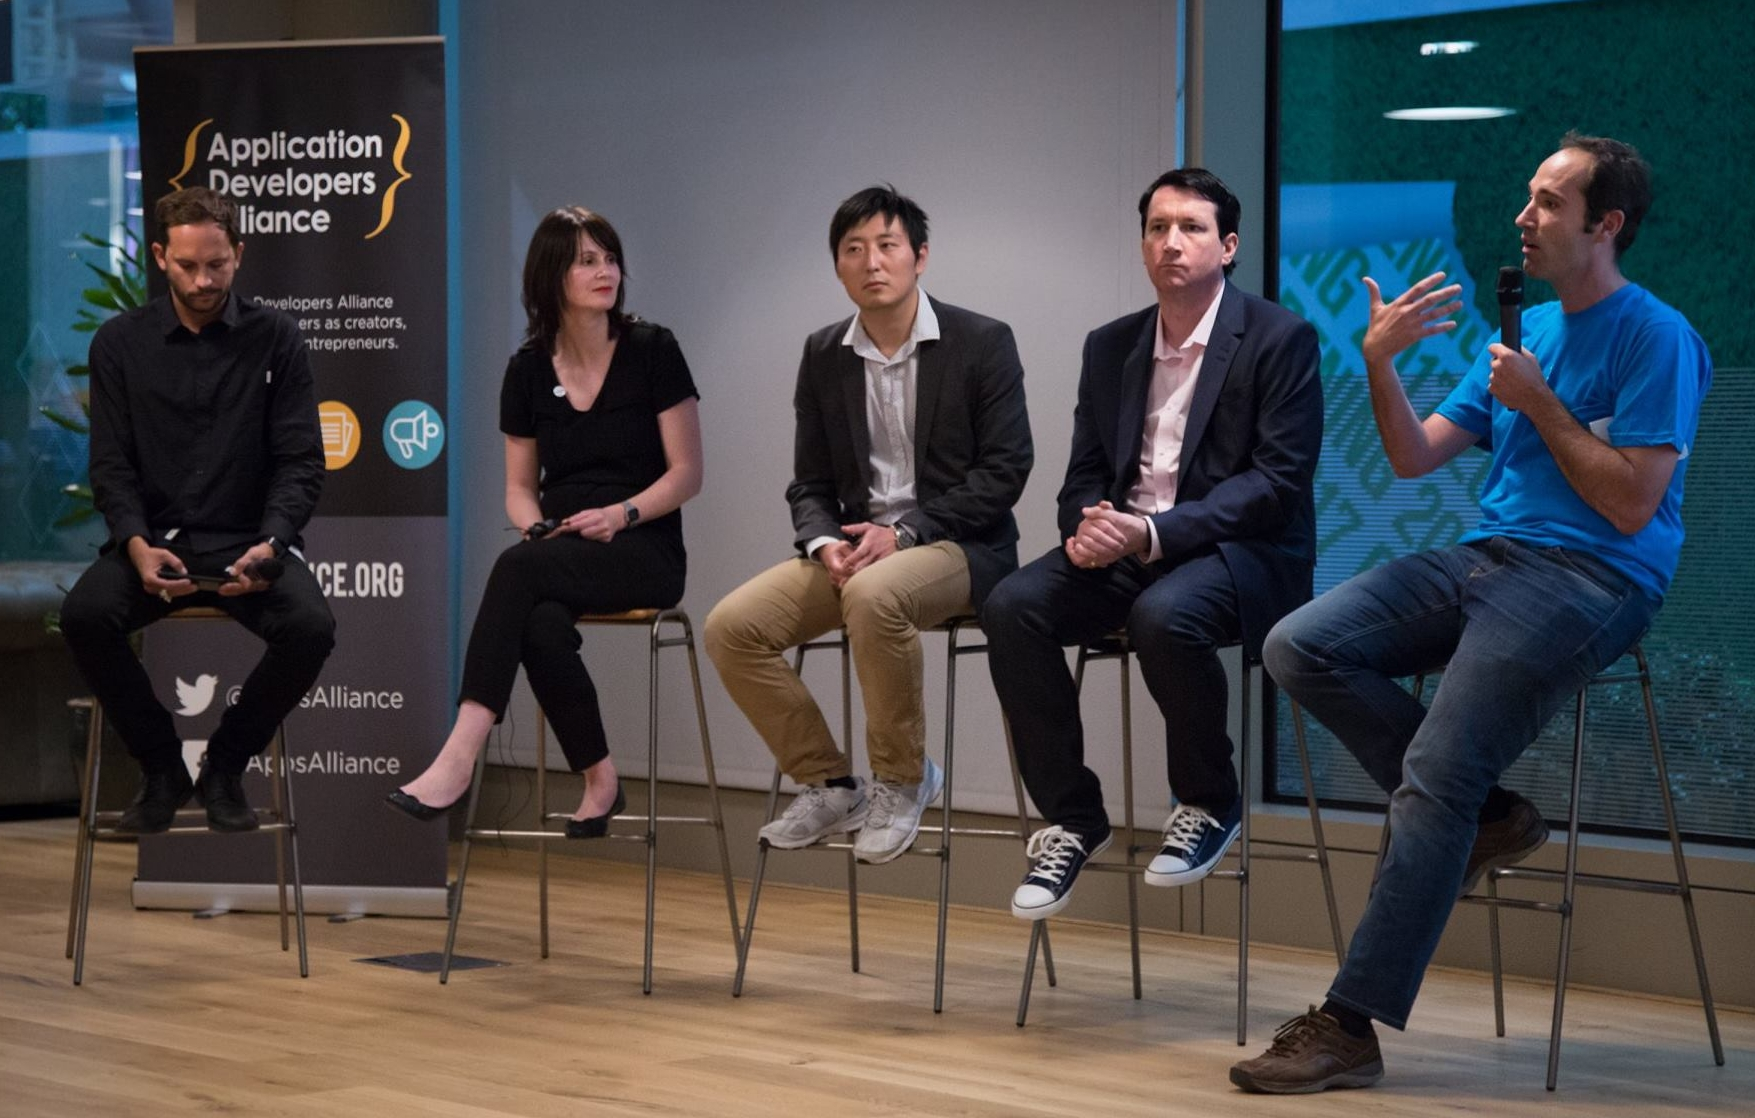 From left to right: Moderator,  Bradley Want , ‪Head of Business Development at The ASO Co,  Lea Hartkopf , ‪Head of Marketing at  busuu ,   Jack Tang , ‪CEO and Founder of  Funky Panda ,  Matt Casey , ‪Monetization Manager of  Jagex  and  Xavier Louis , ‪Co-founder & Chief Product Officer at  Peak